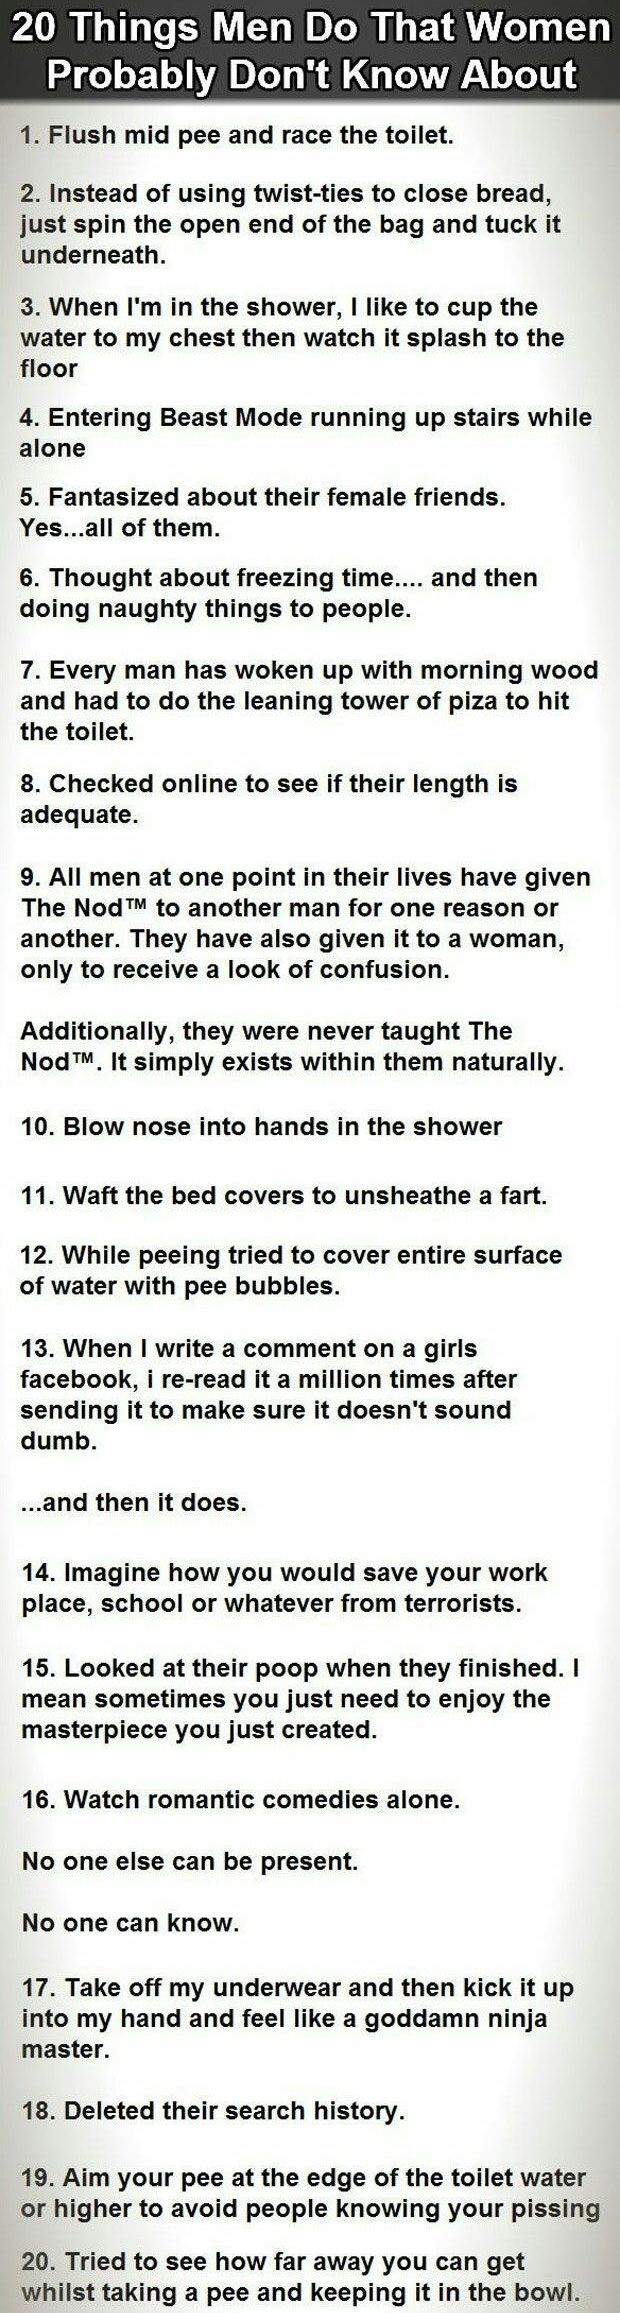 Facts About Men